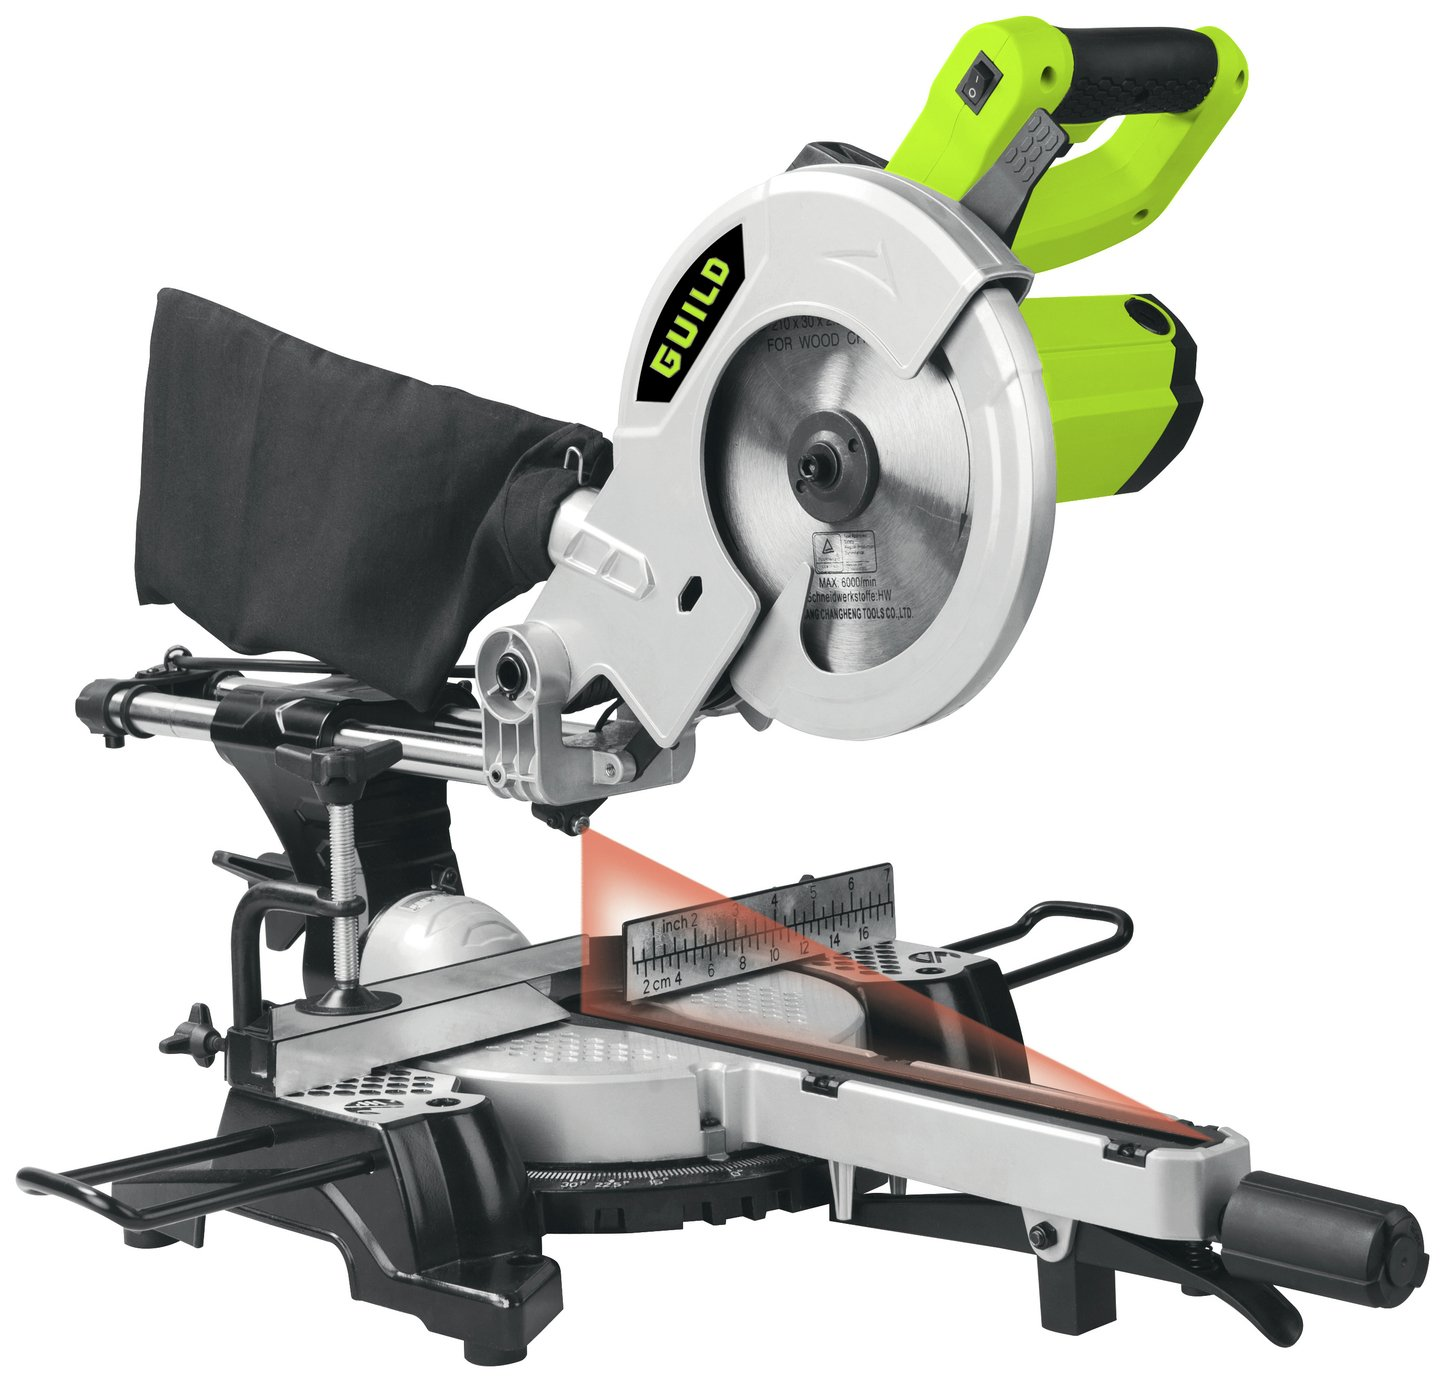 Guild - 210nm Sliding Mitre Saw with Laser - 1700W